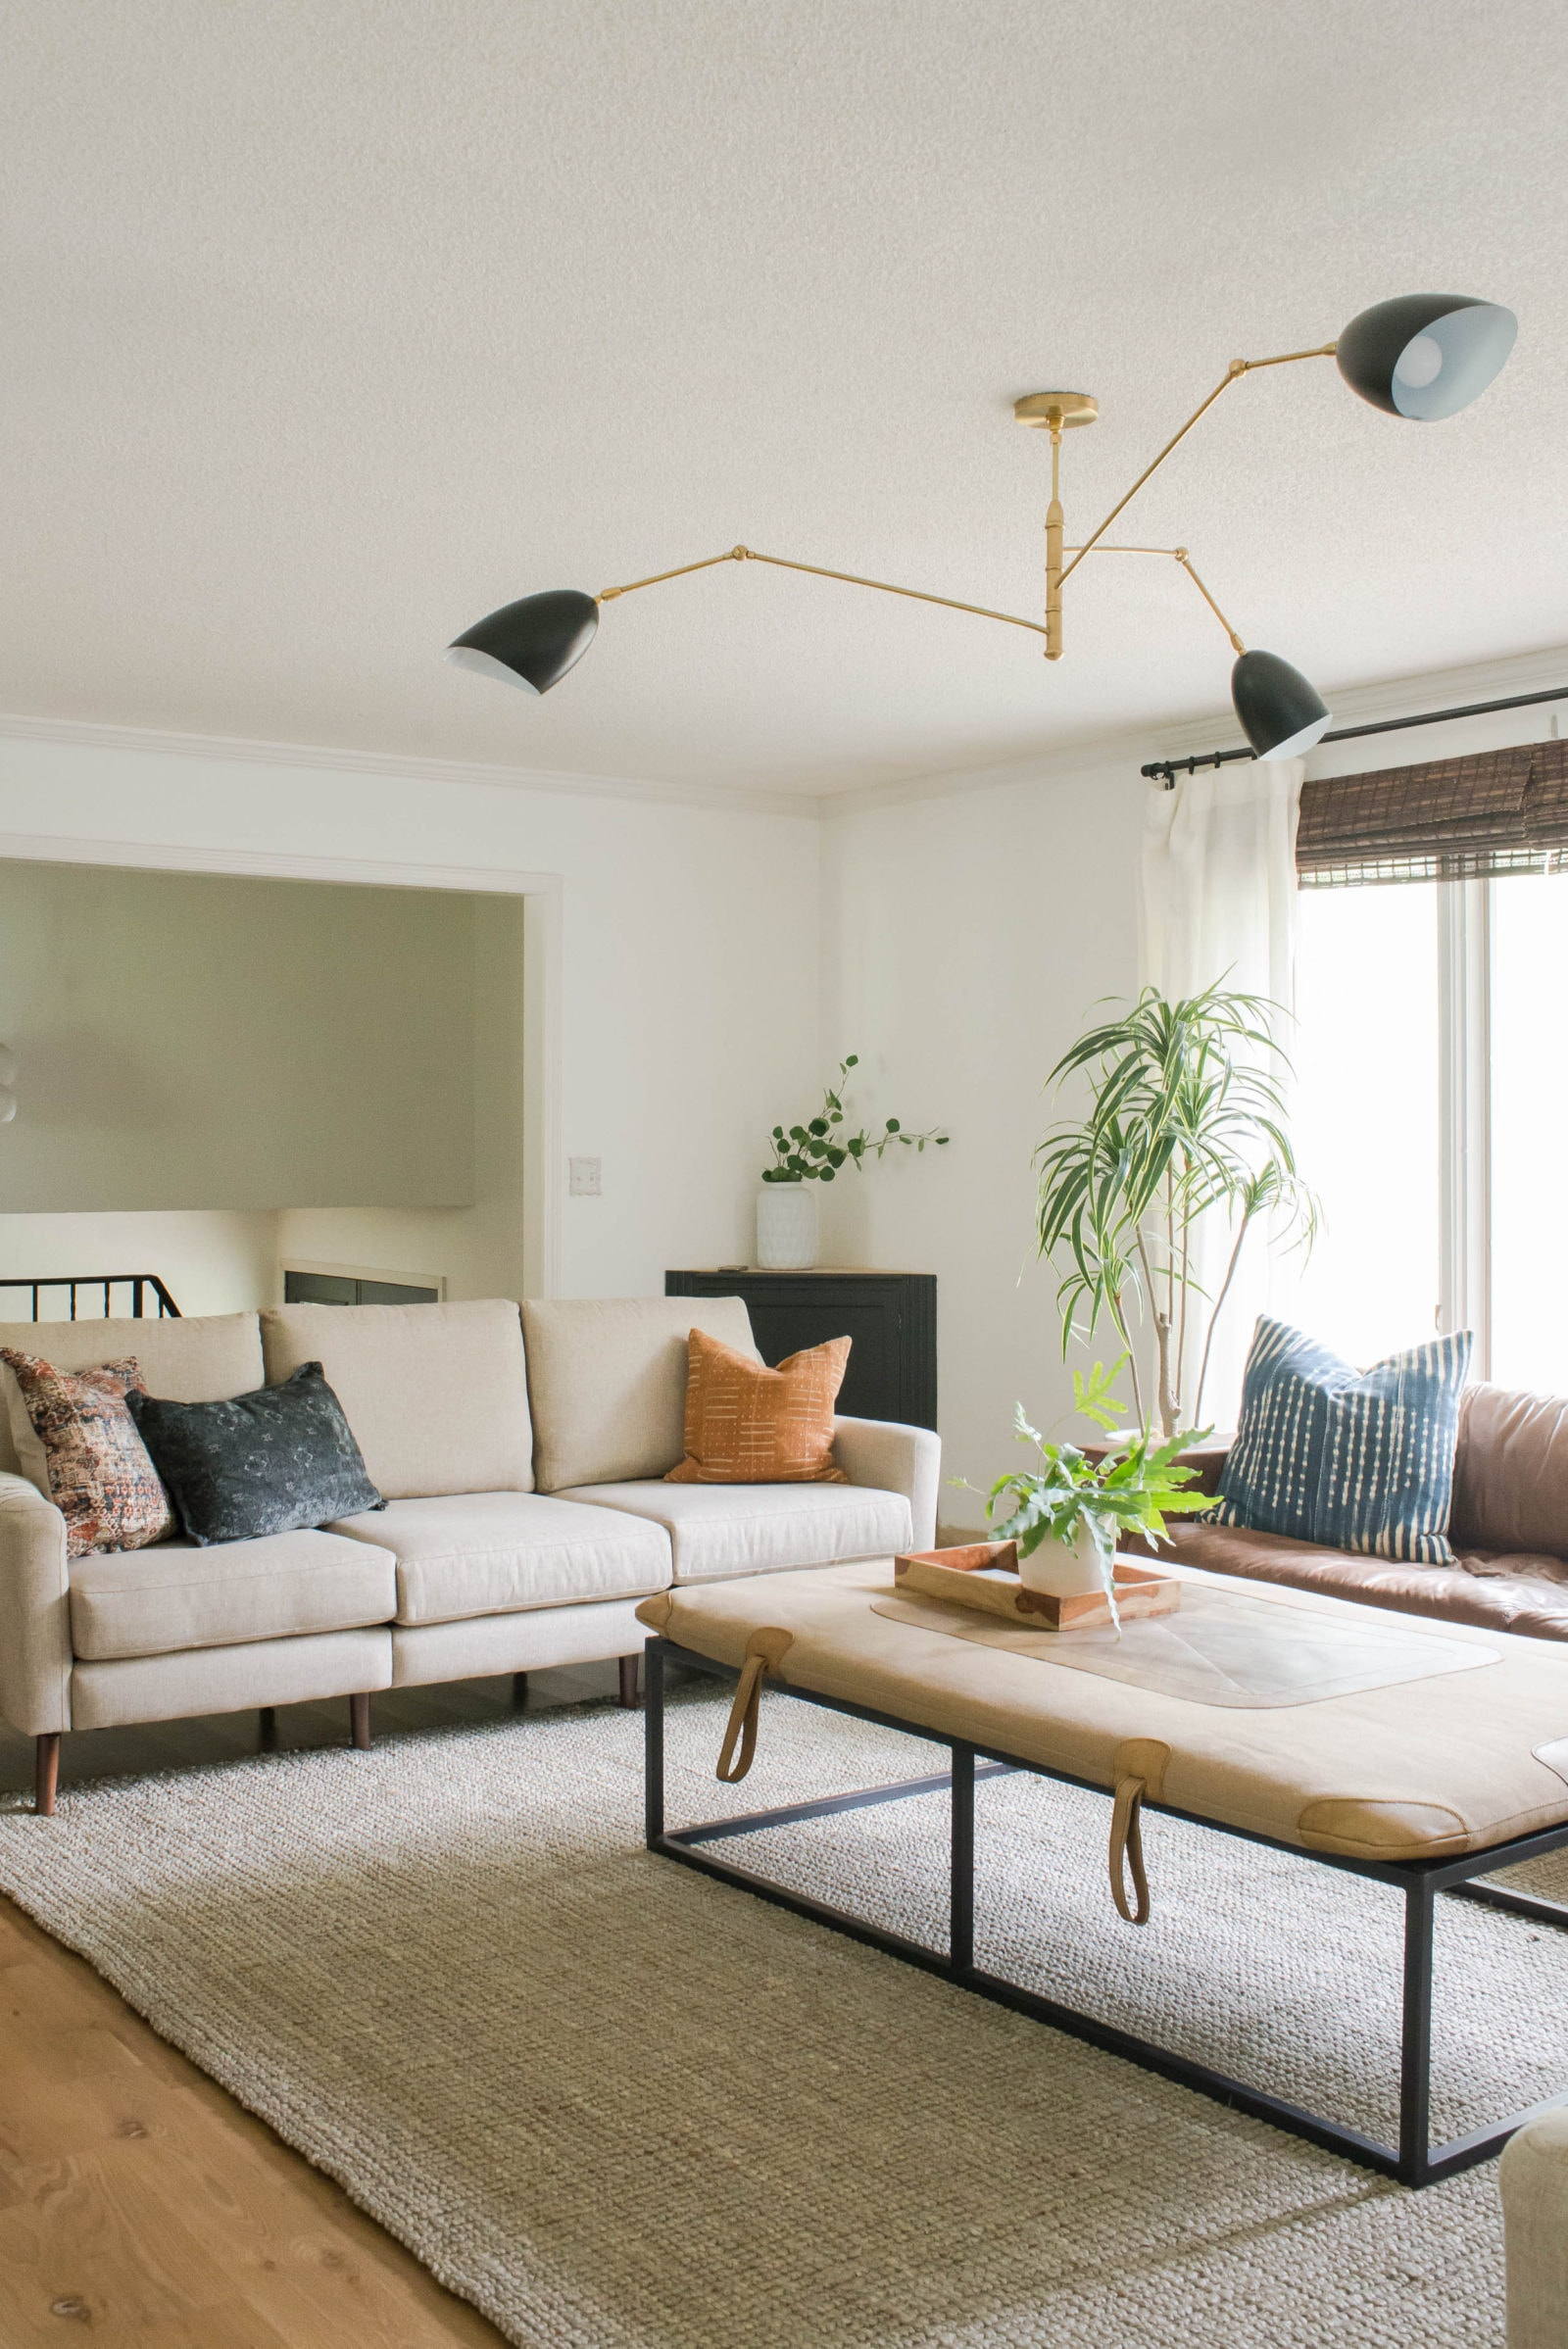 Couch in living room with white walls